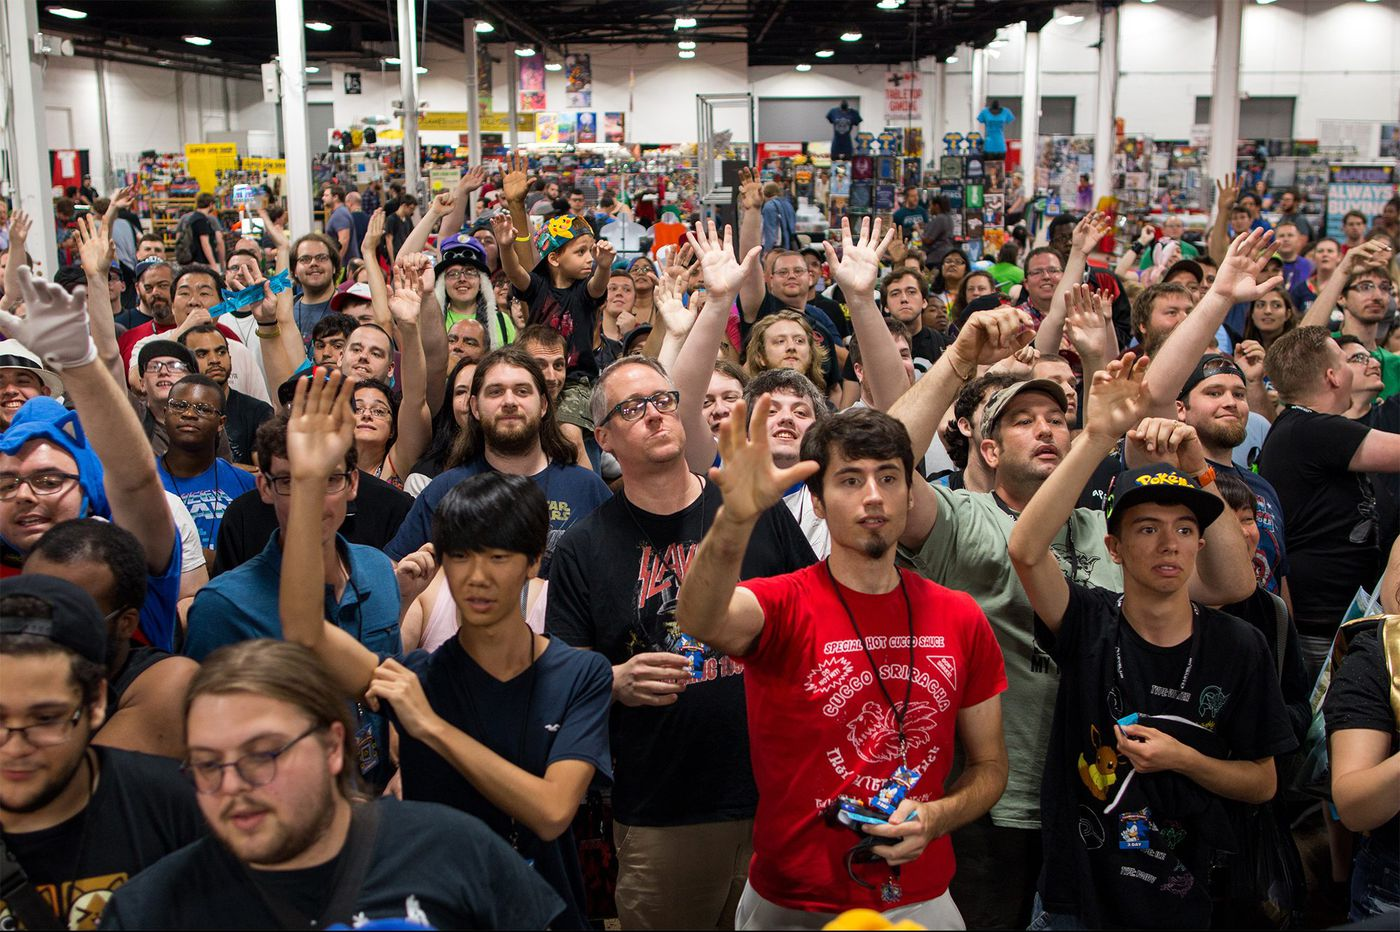 Win $5,000 playing Overwatch at the TooManyGames convention